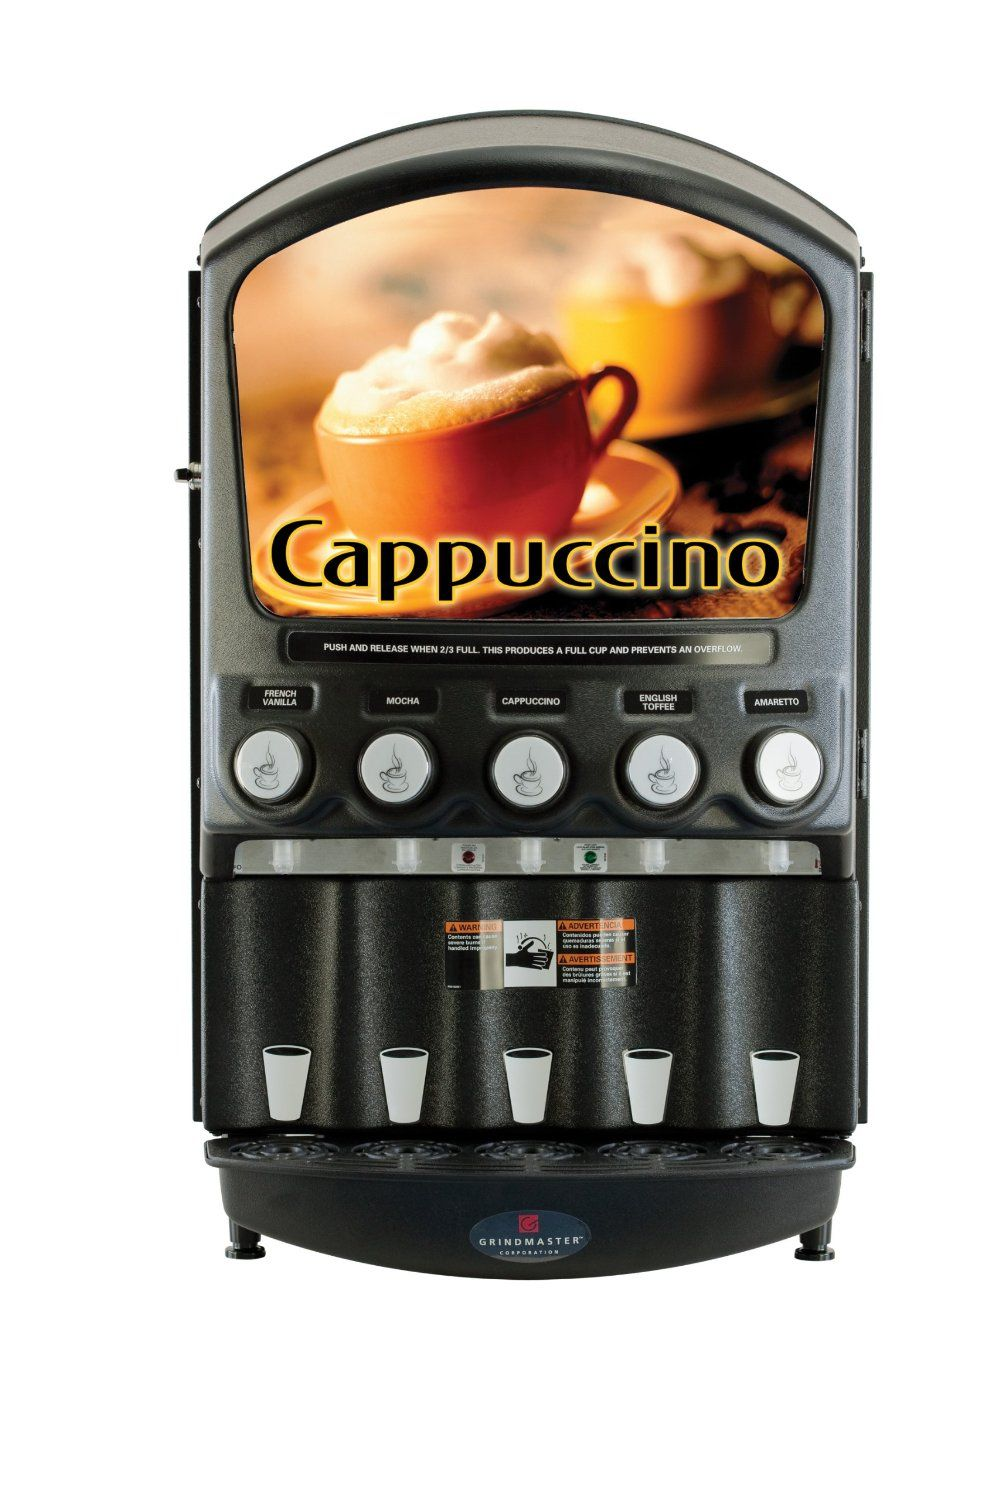 Grindmaster-Cecilware PIC5 5-Flavor Hot Powder Cappuccino/Hot Chocolate and Specialty Beverage Dispenser